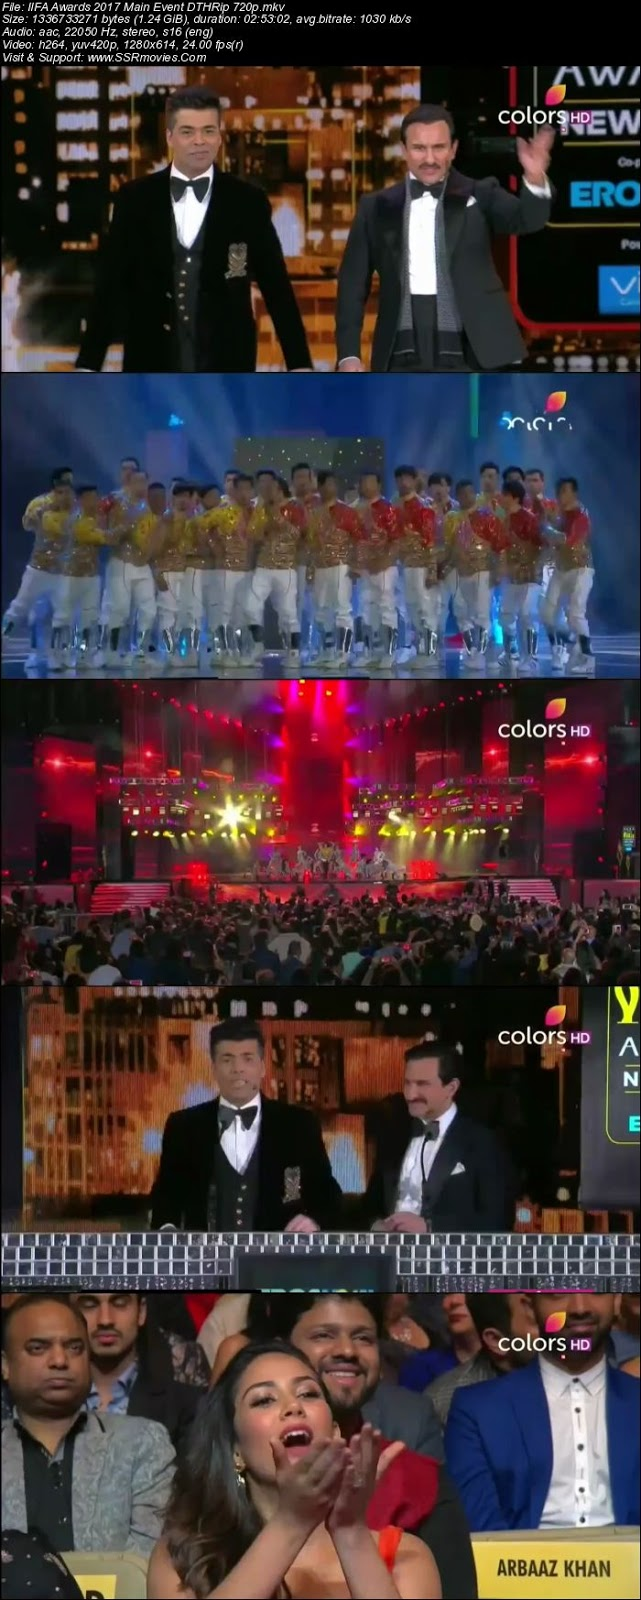 Iifa awards 2017 main event full show download 720p ssr - Academy awards 2017 download ...